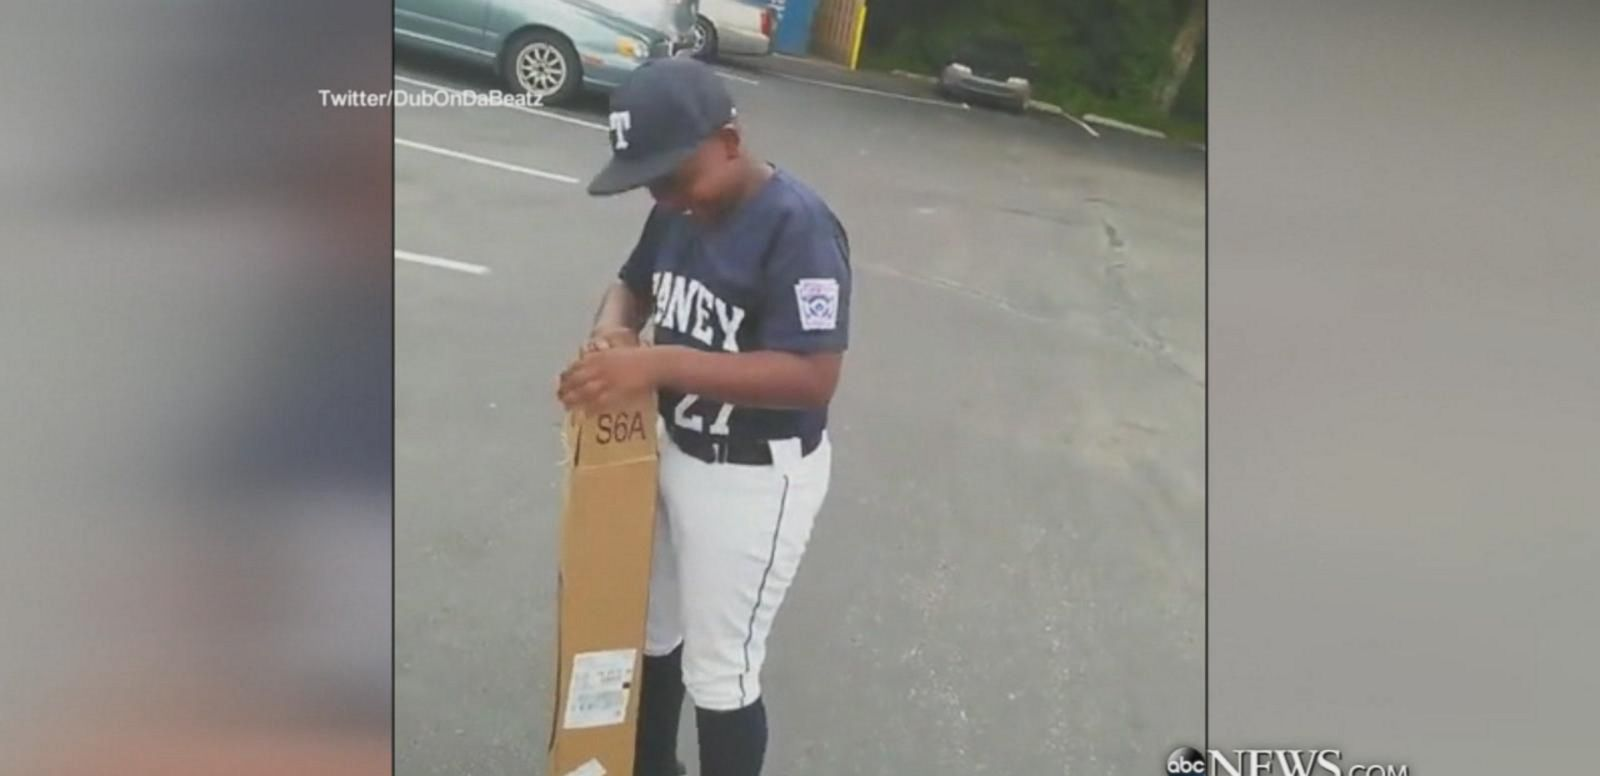 VIDEO: Dad Surprises Son with a New Baseball Bat for His Birthday